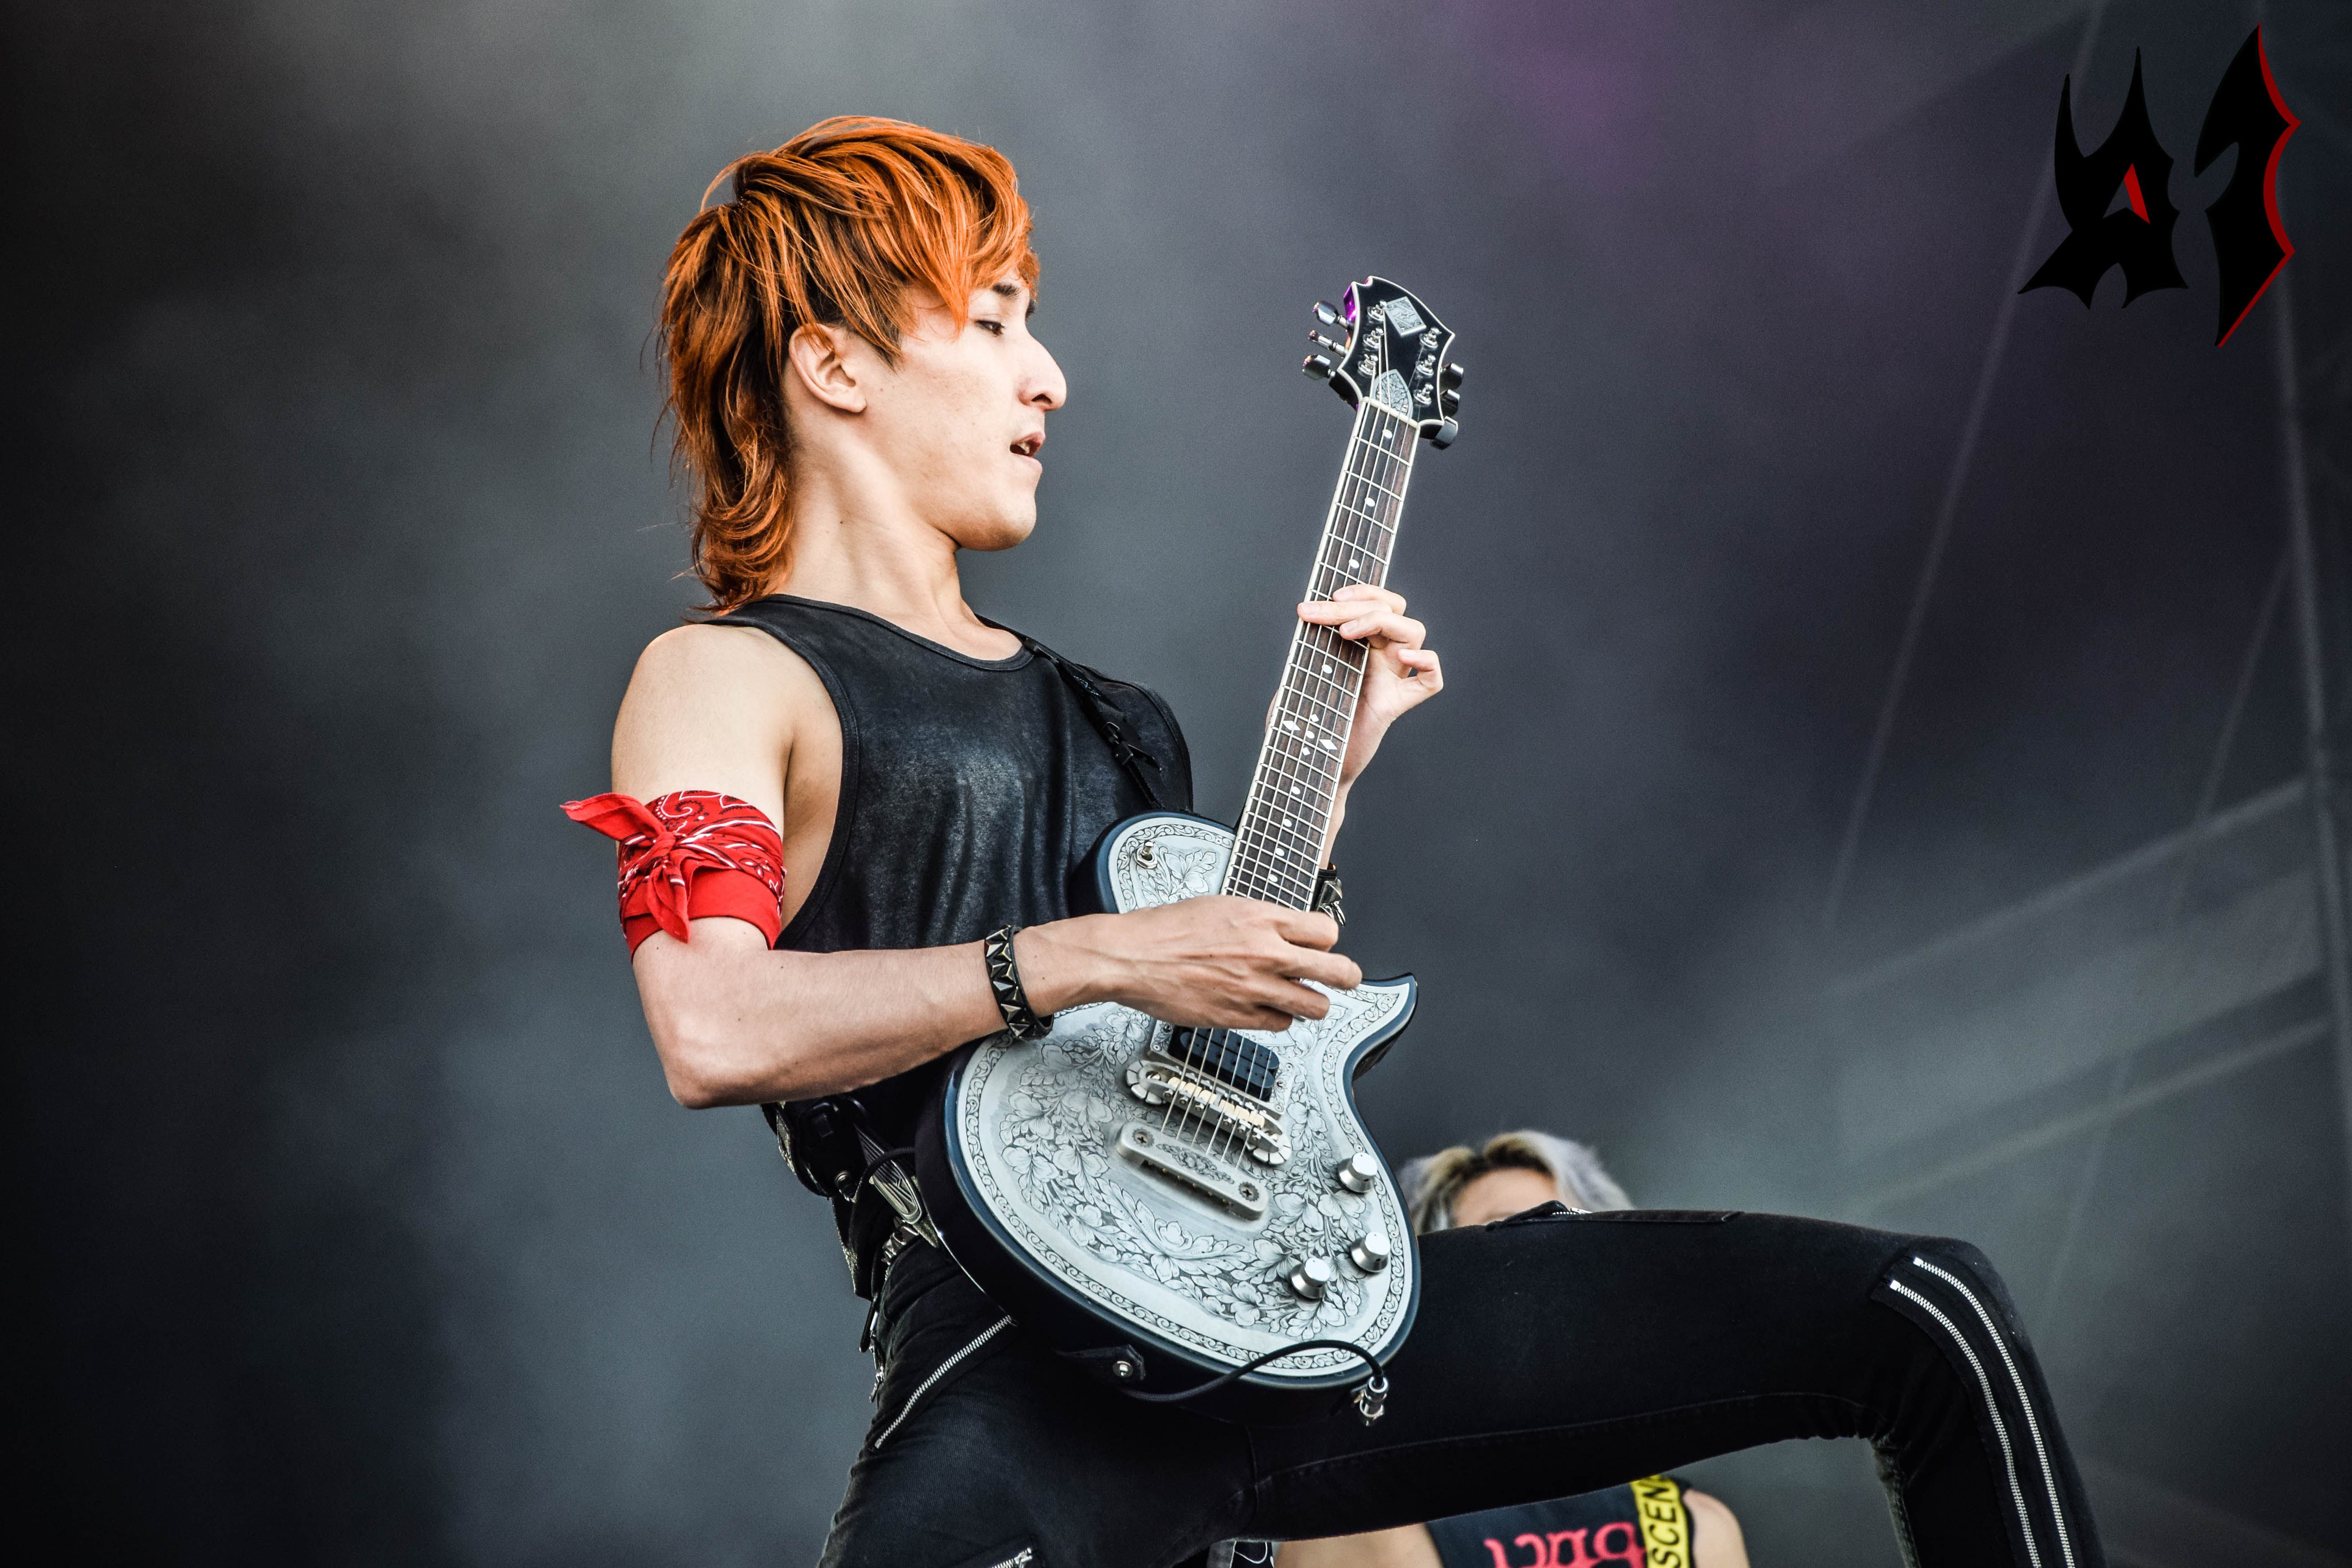 Donwload 2018 – Day 2 - Crossfaith 11